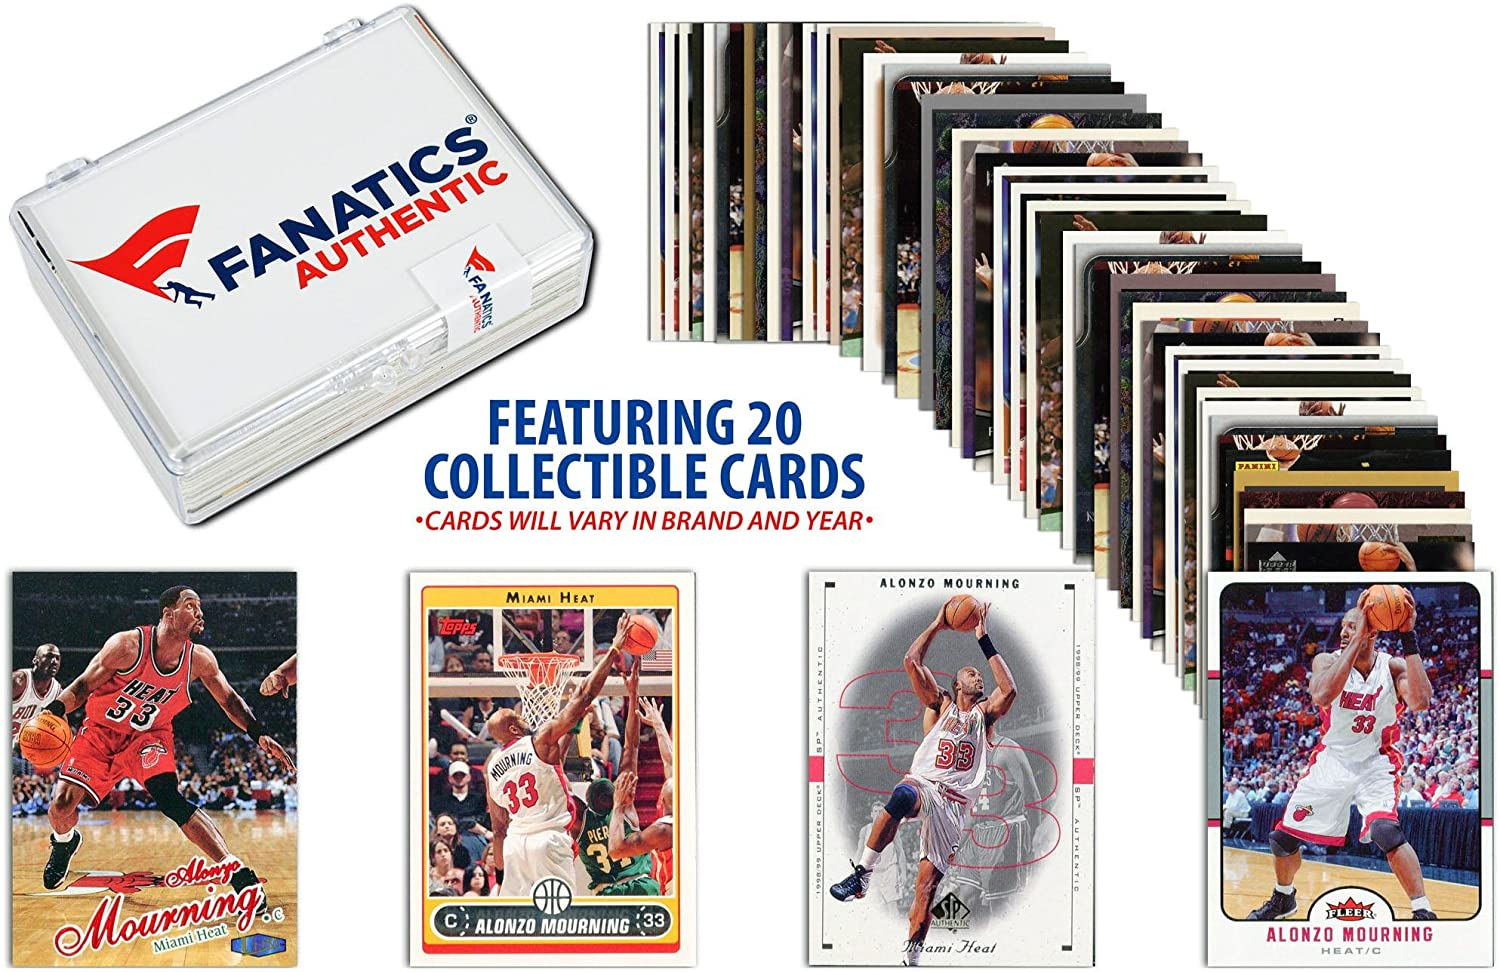 Alonzo Mourning Miami Heat Collectible 15 Card Lot - Basketball Player Sets Fanatics Authentic